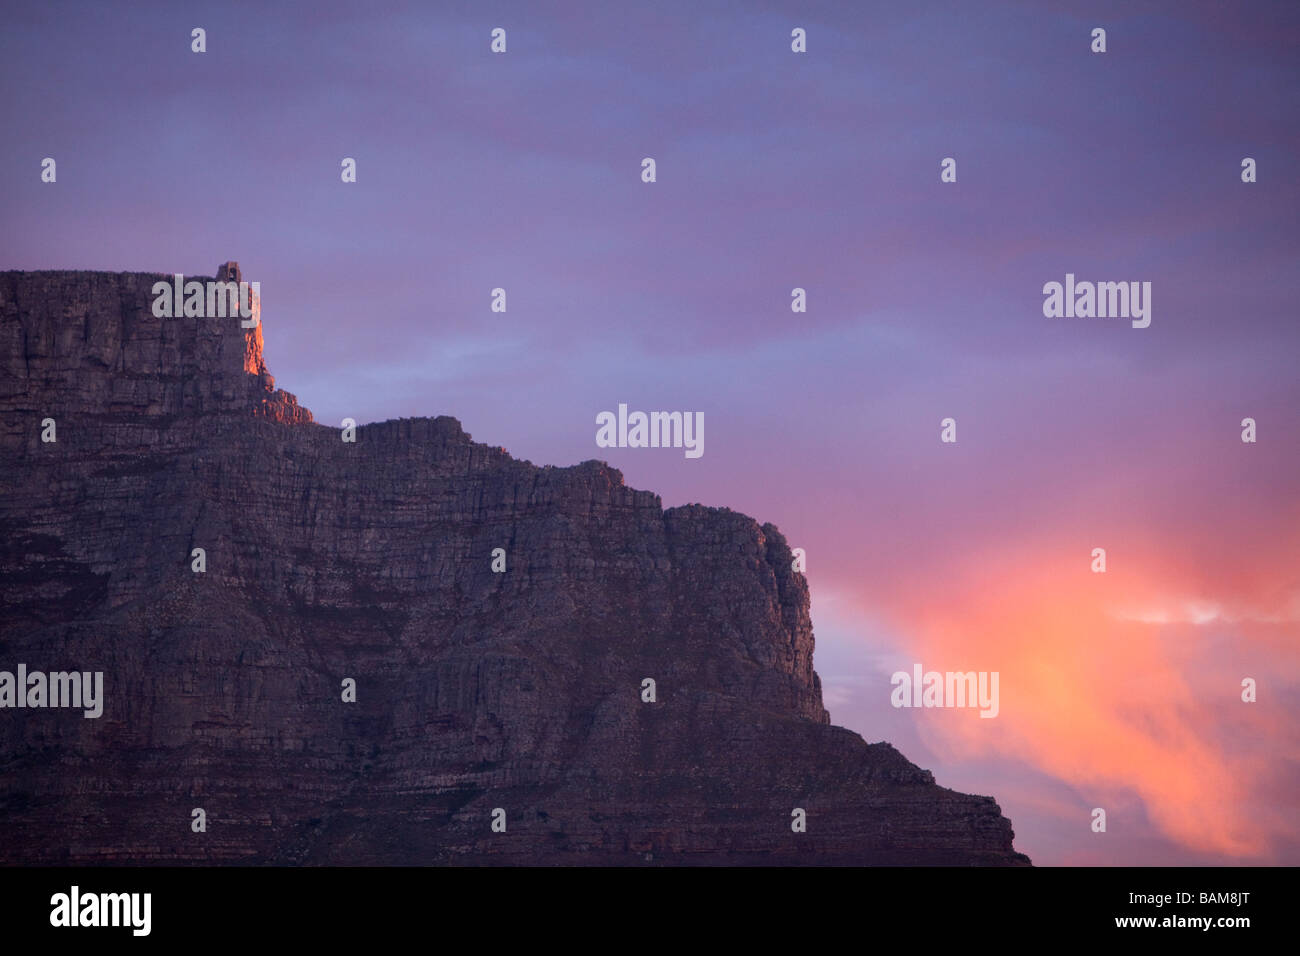 The sun lights up a wispy cloud at sunset over Table Mountain - Stock Image